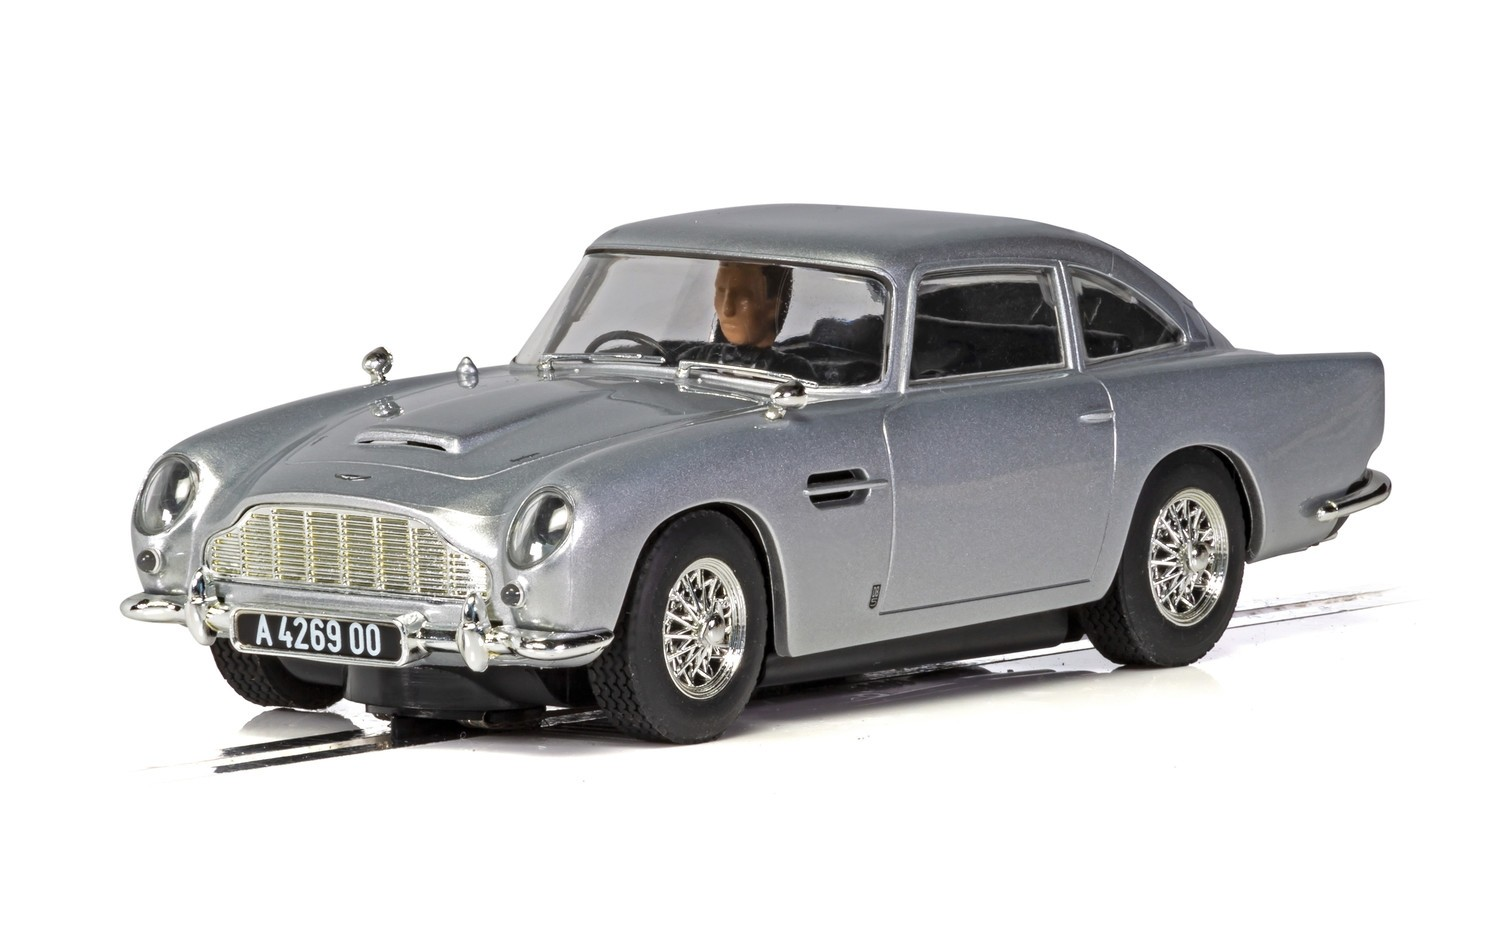 C4202 Scalextric James Bond Aston Martin DB5 'No Time to Die'